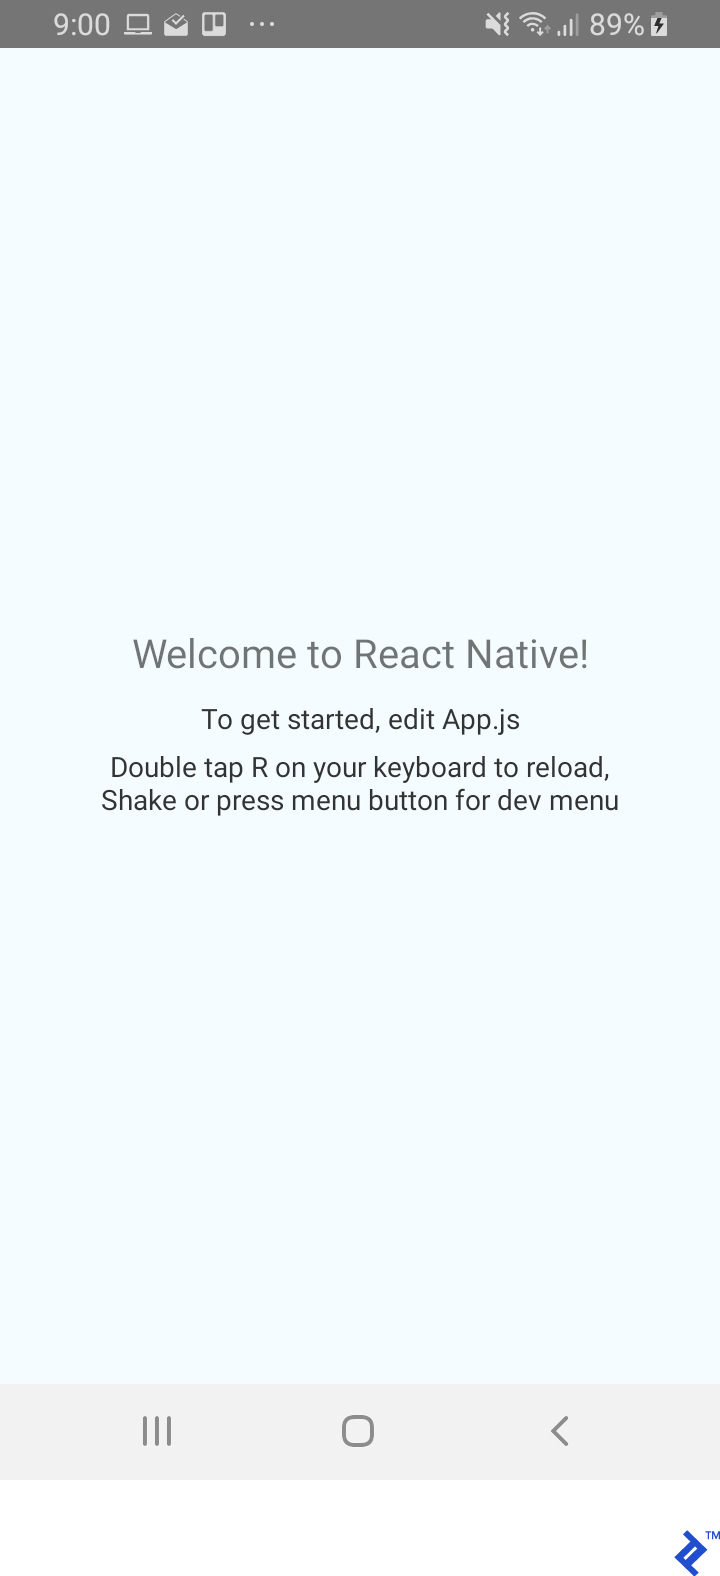 The Android Emulator showing a React Native welcome screen.